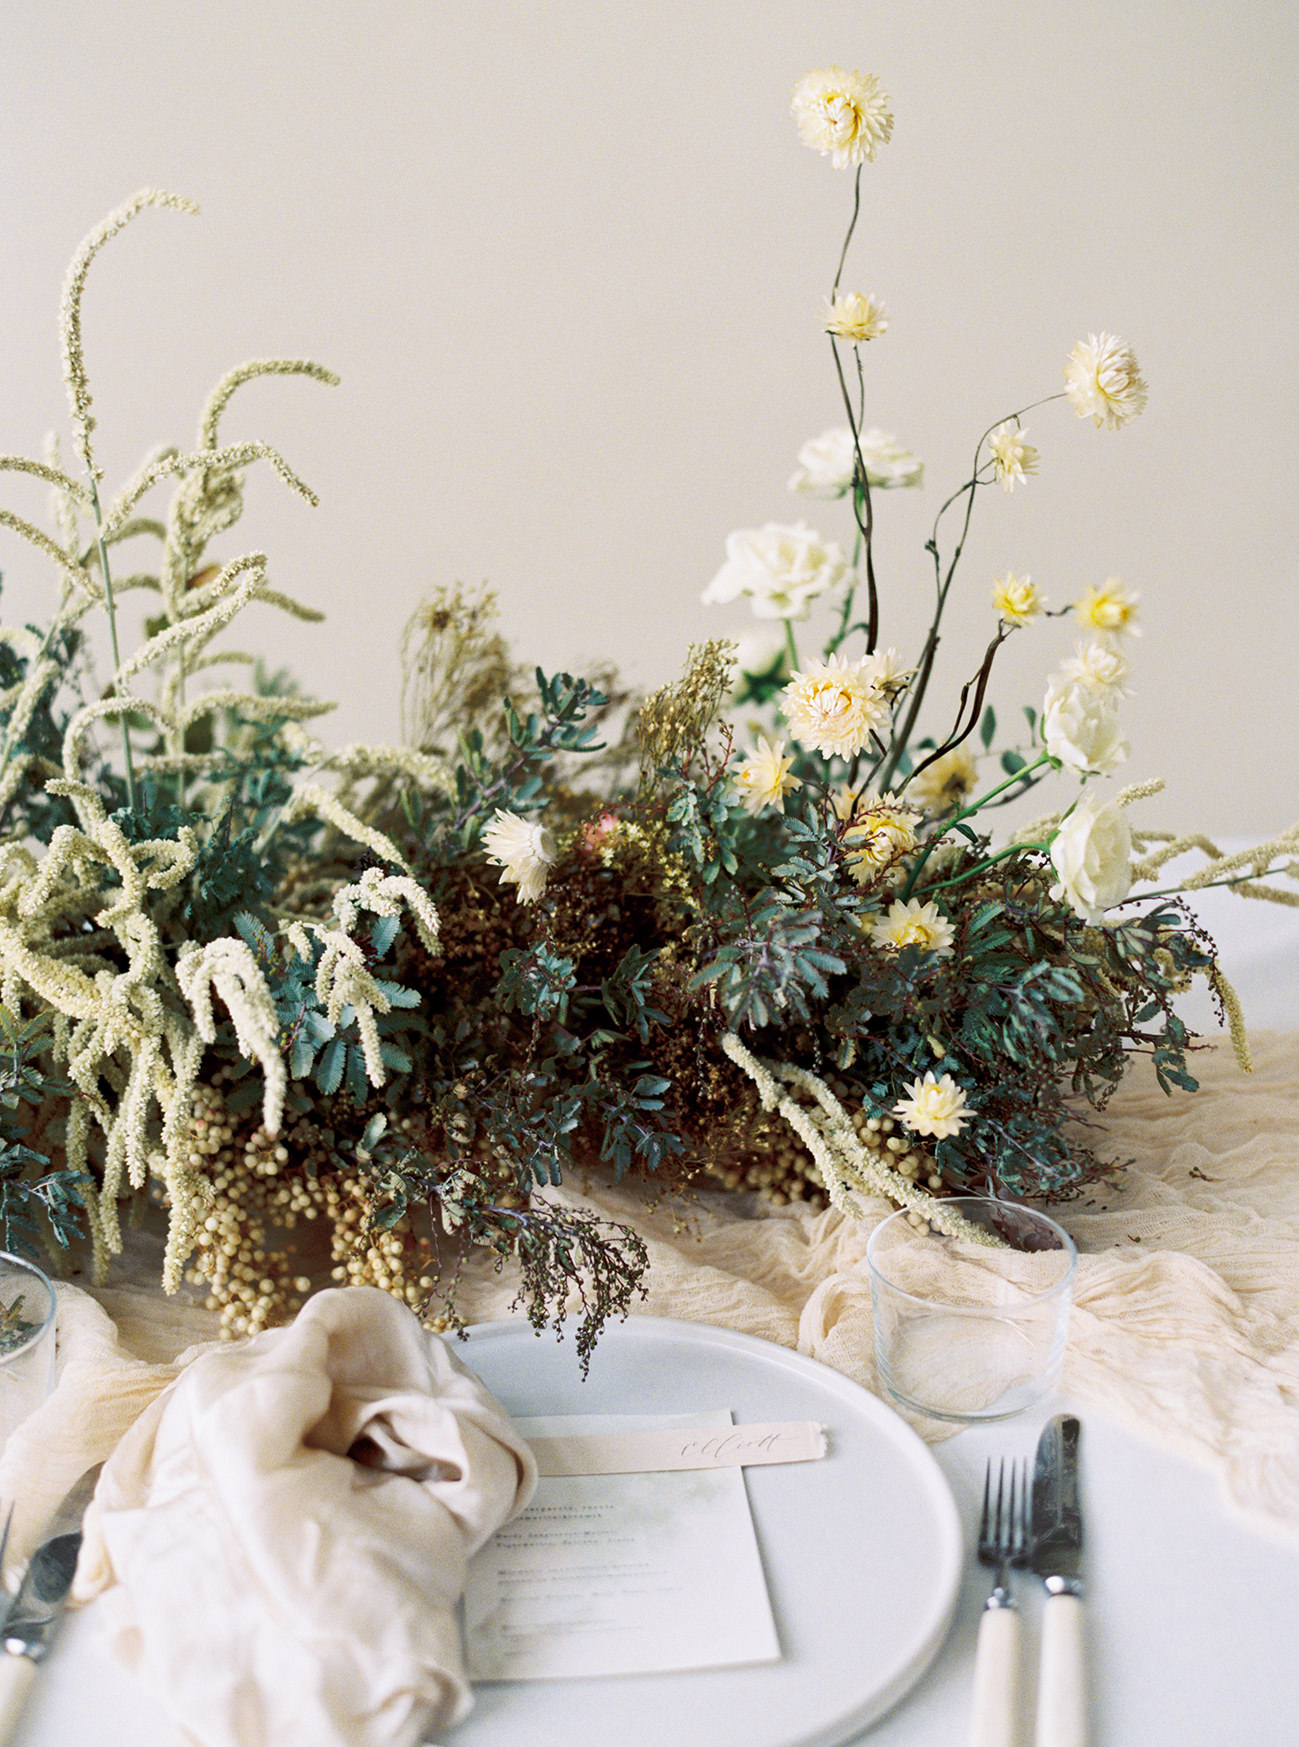 Bridal Inspiration, Wedding Bouquet, Hääkuvaus, Film Wedding Photographer, Table Setting Inspiration, Stationery, Dried Flowers, www.nordandmae.com, www.susannanordvall (18).jpg